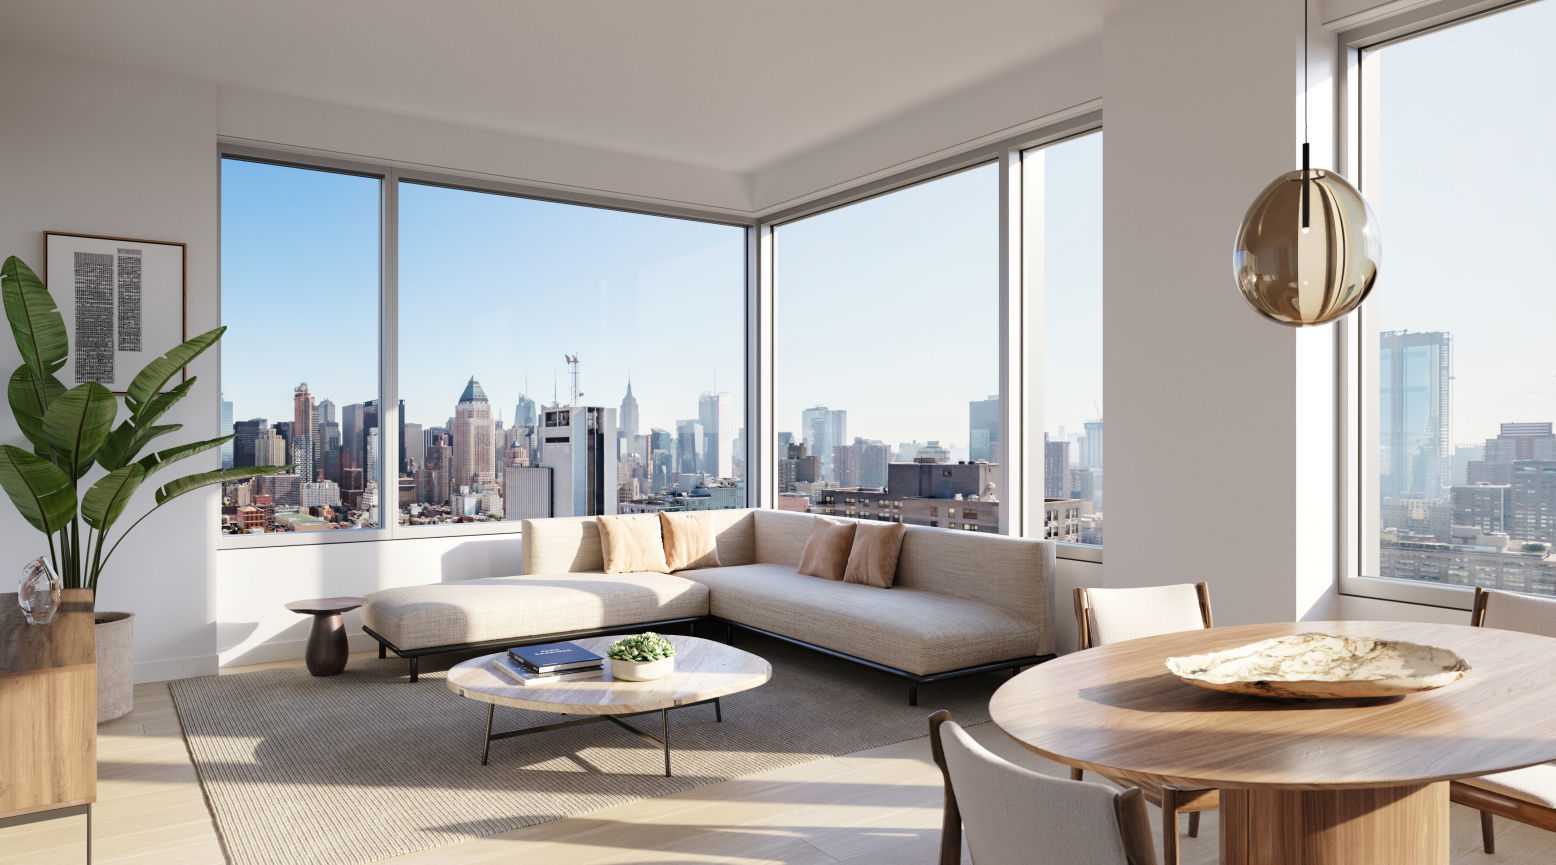 Apartment for sale at 611 West 56th Street, Apt 6-D